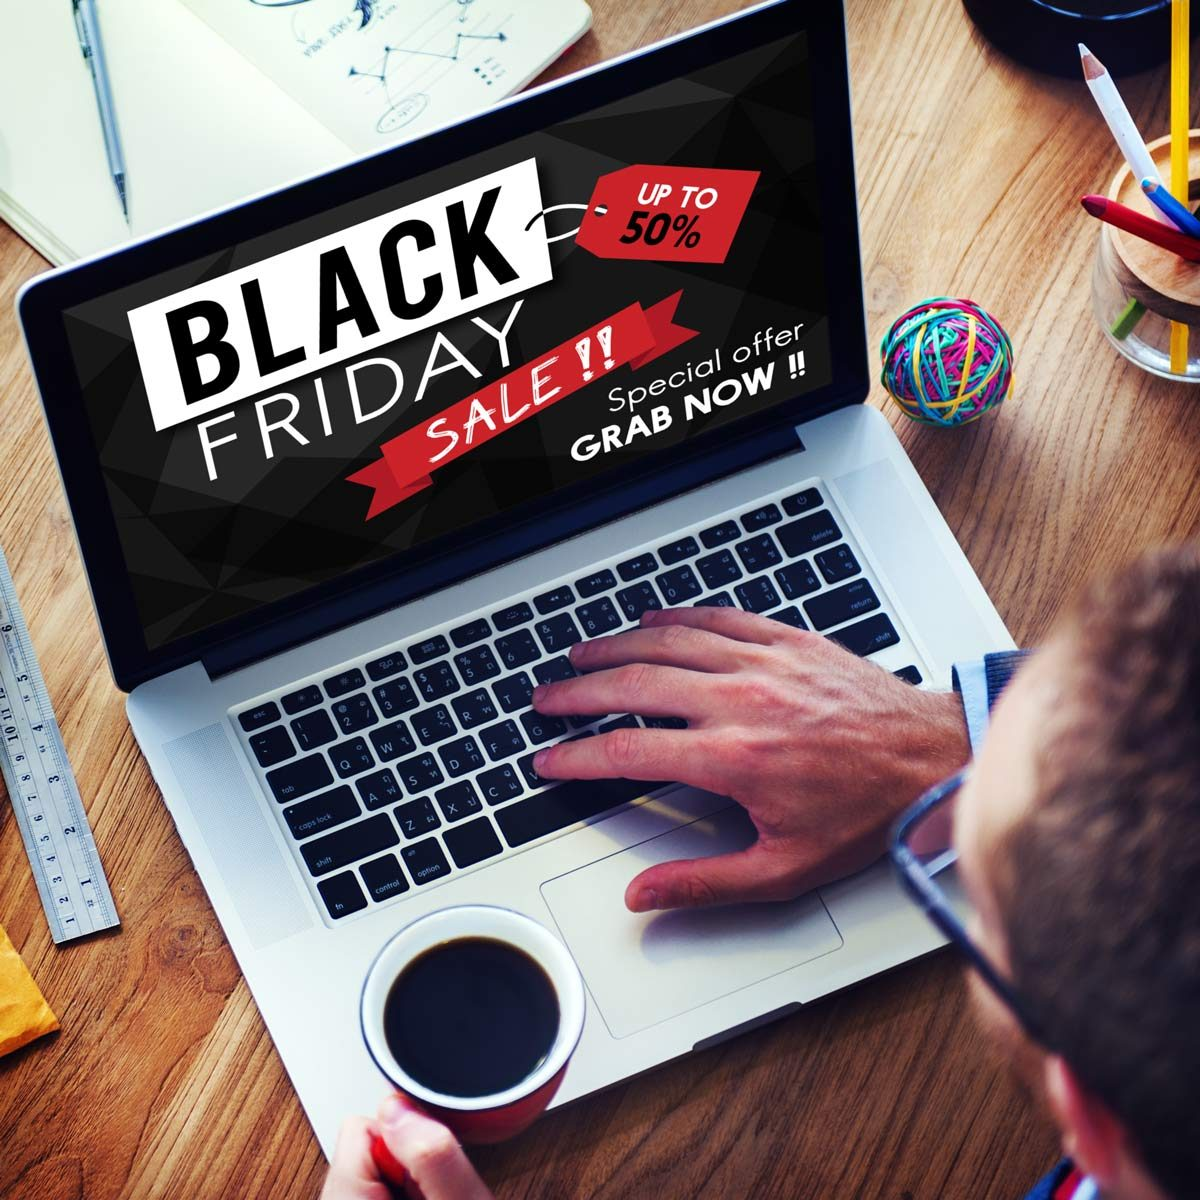 Black Friday Online Shop While You Digest Between Meals | The Family  Handyman